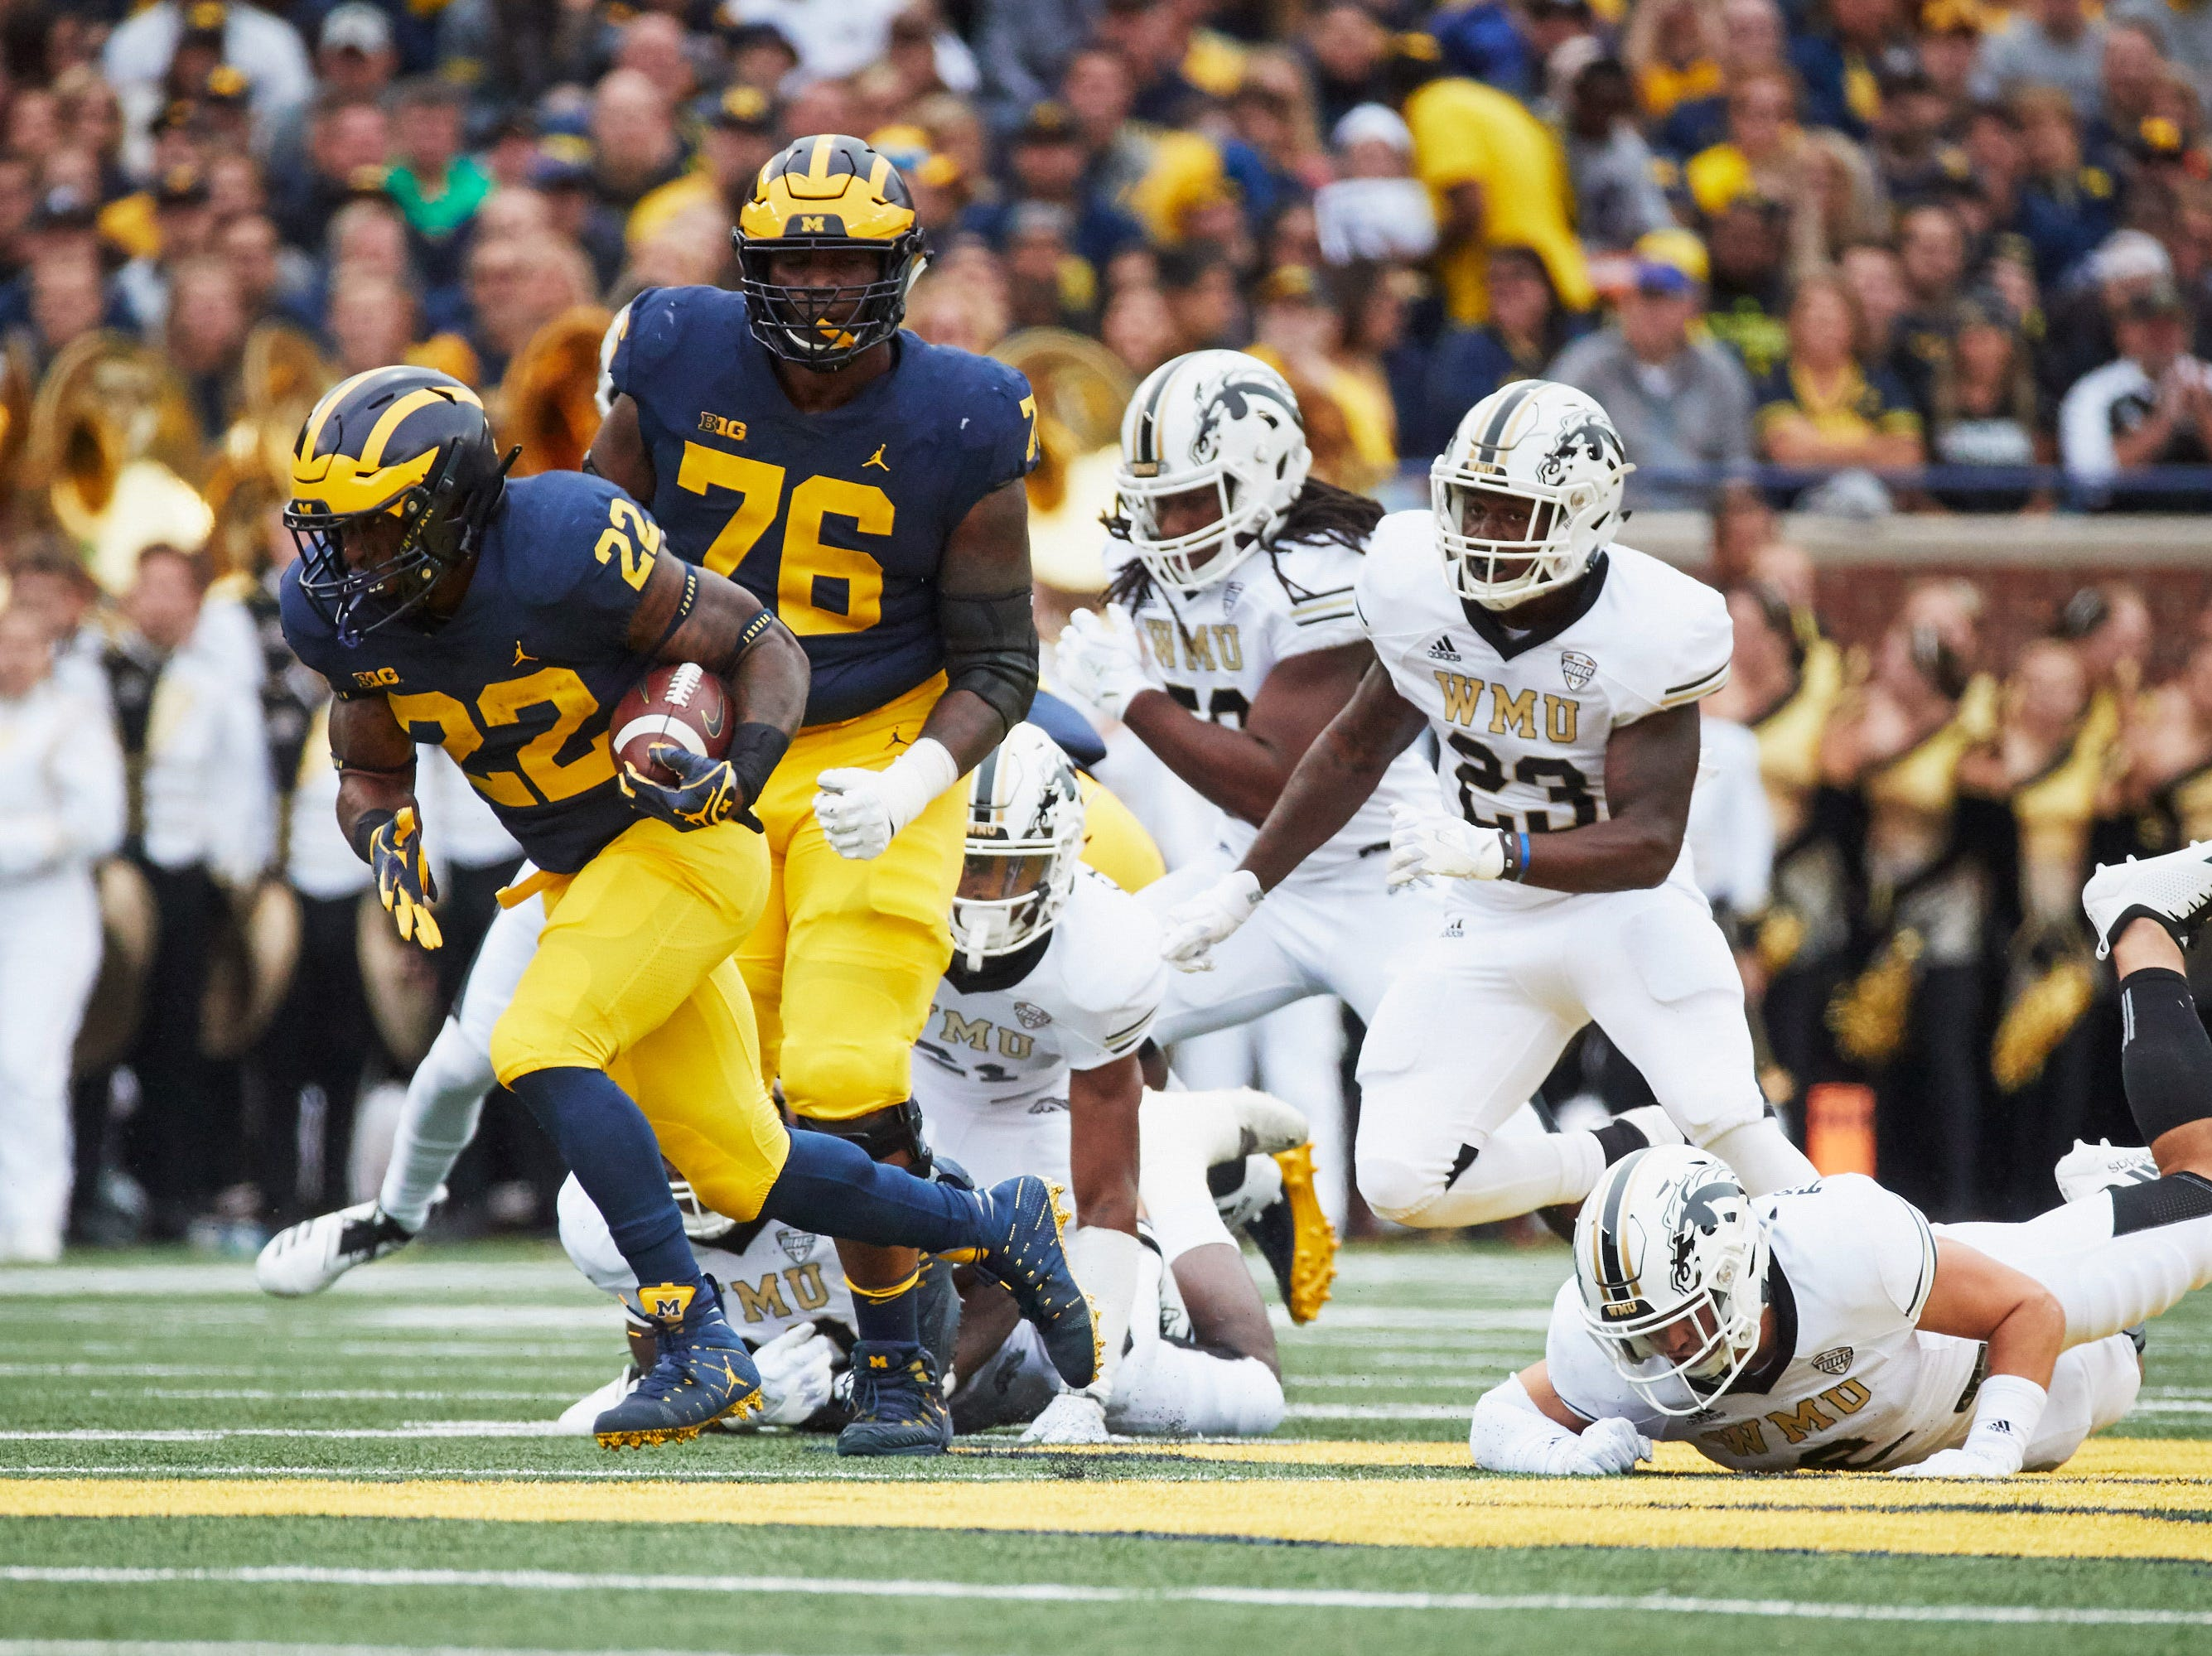 Sep 8, 2018; Ann Arbor, MI, USA; Michigan Wolverines running back Karan Higdon (22) rushes in the first half against the Western Michigan Broncos at Michigan Stadium. Mandatory Credit: Rick Osentoski-USA TODAY Sports